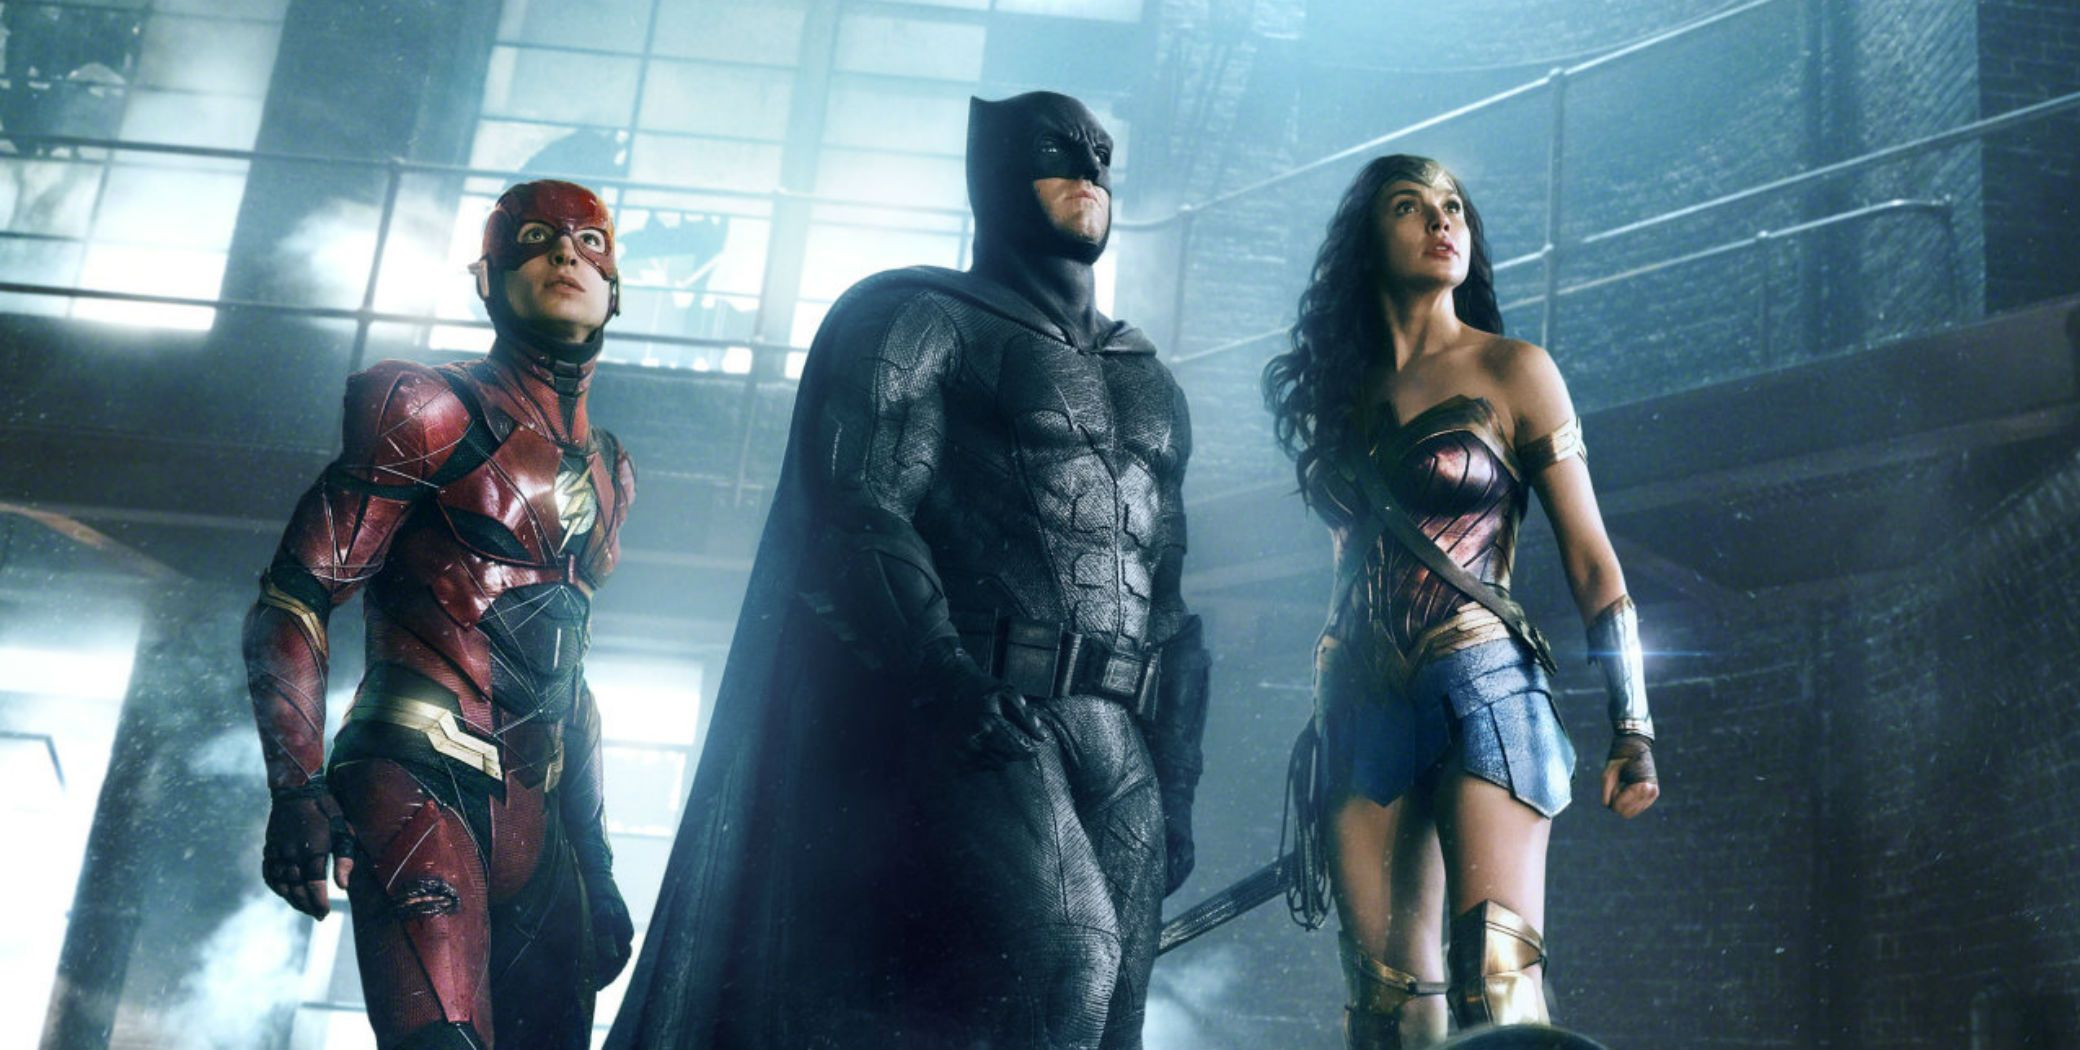 Justice League director Zack Snyder unveils early costumes for Batman, Aquaman and Flash